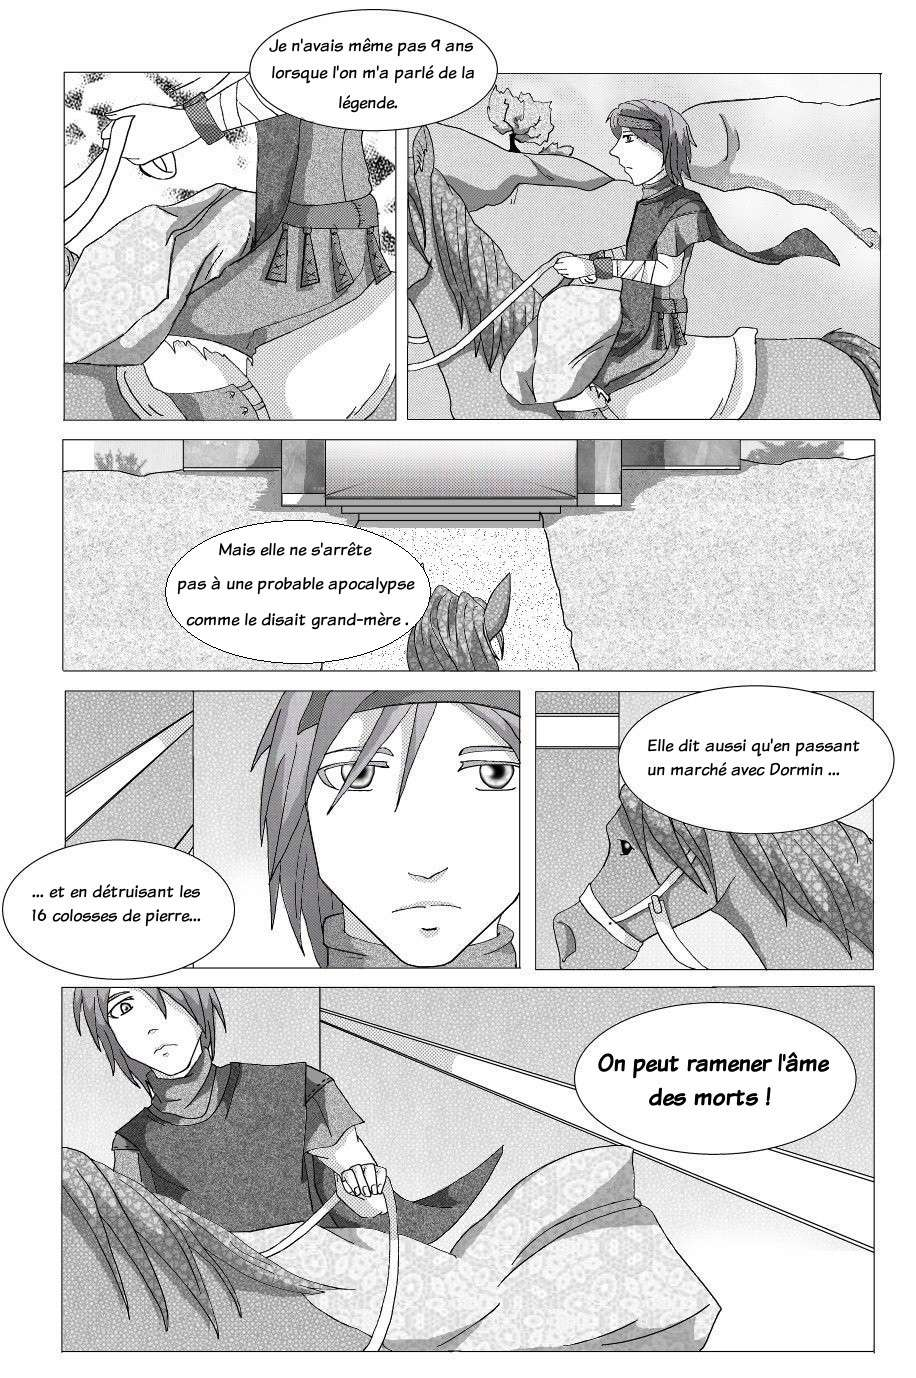 Preview Shadow of the colossus Page3f12